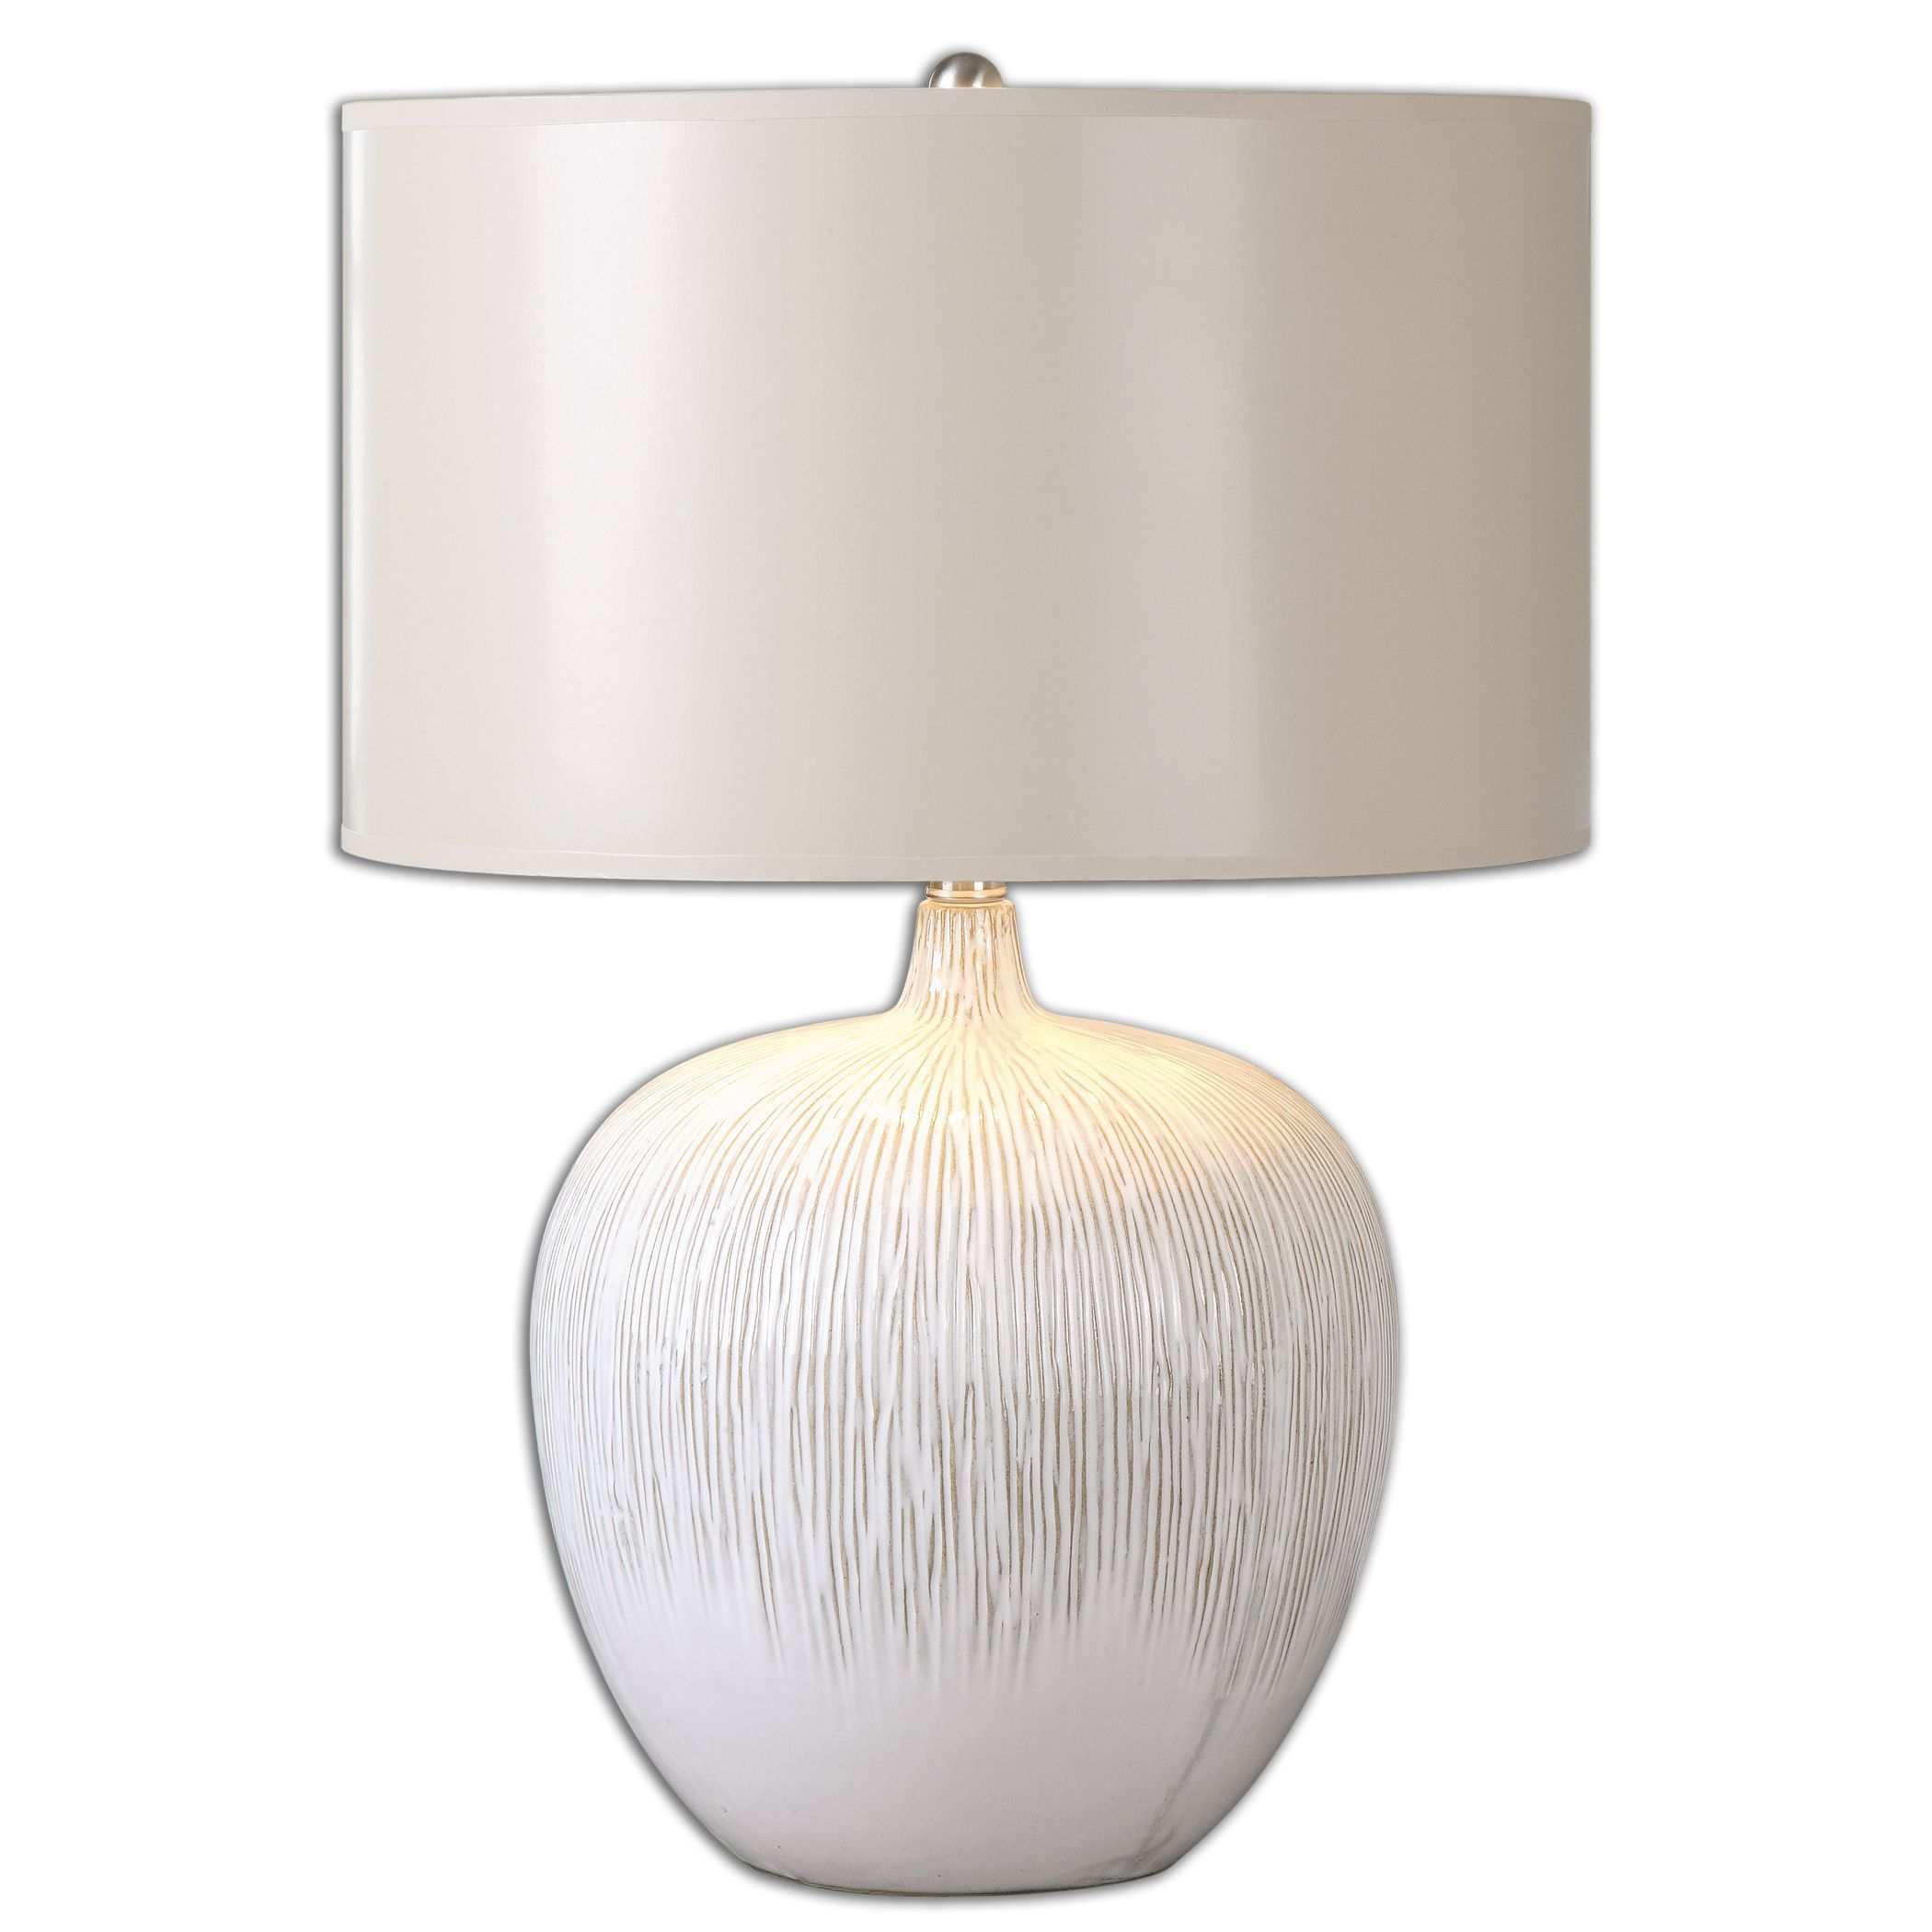 Uttermost georgios light ivory table lamp ceramic ivory table